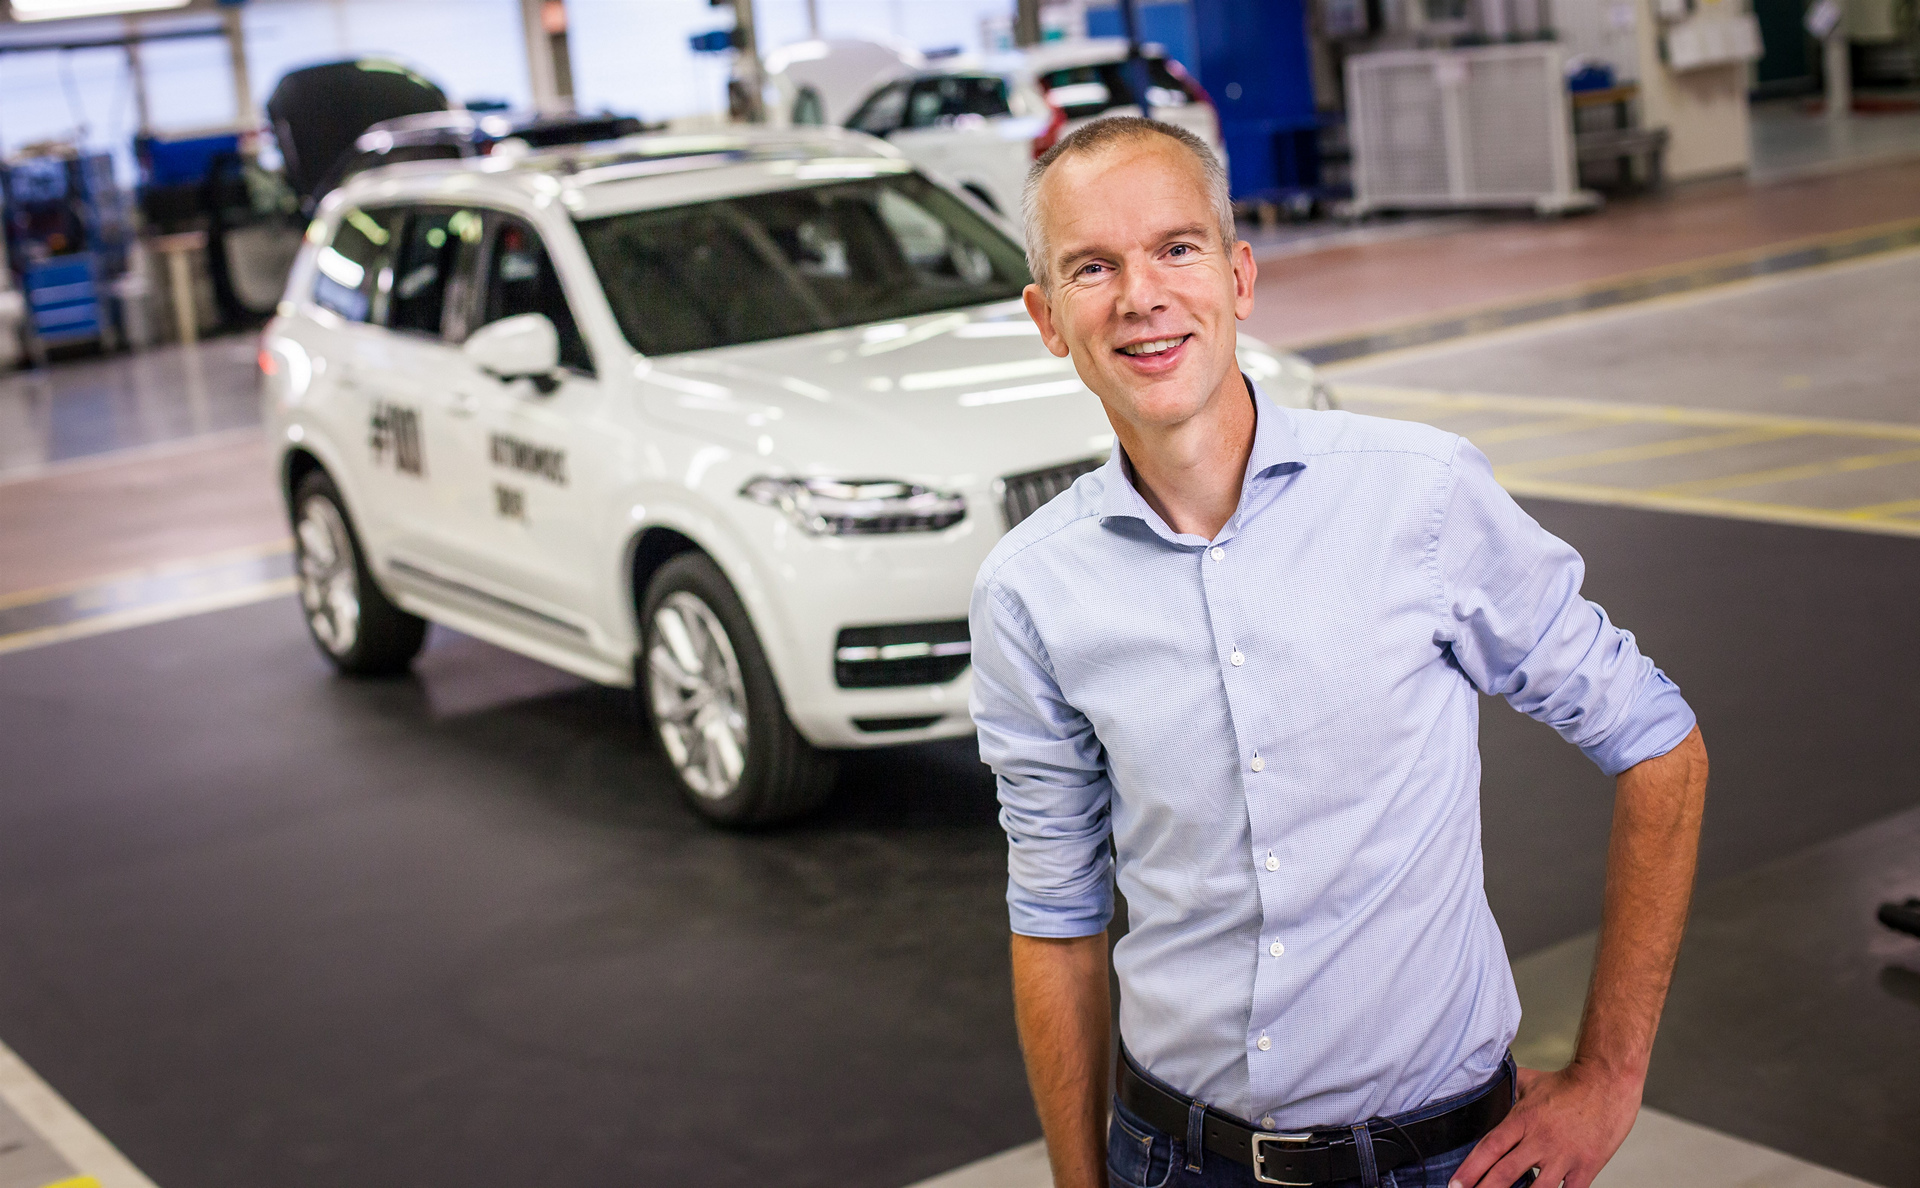 Erik Coelingh, Senior Technical Leader at Volvo Cars, with the very first autonomous XC90 that will be used in the Drive Me project in Gothenburg © Zhejiang Geely Holding Group Co., Ltd